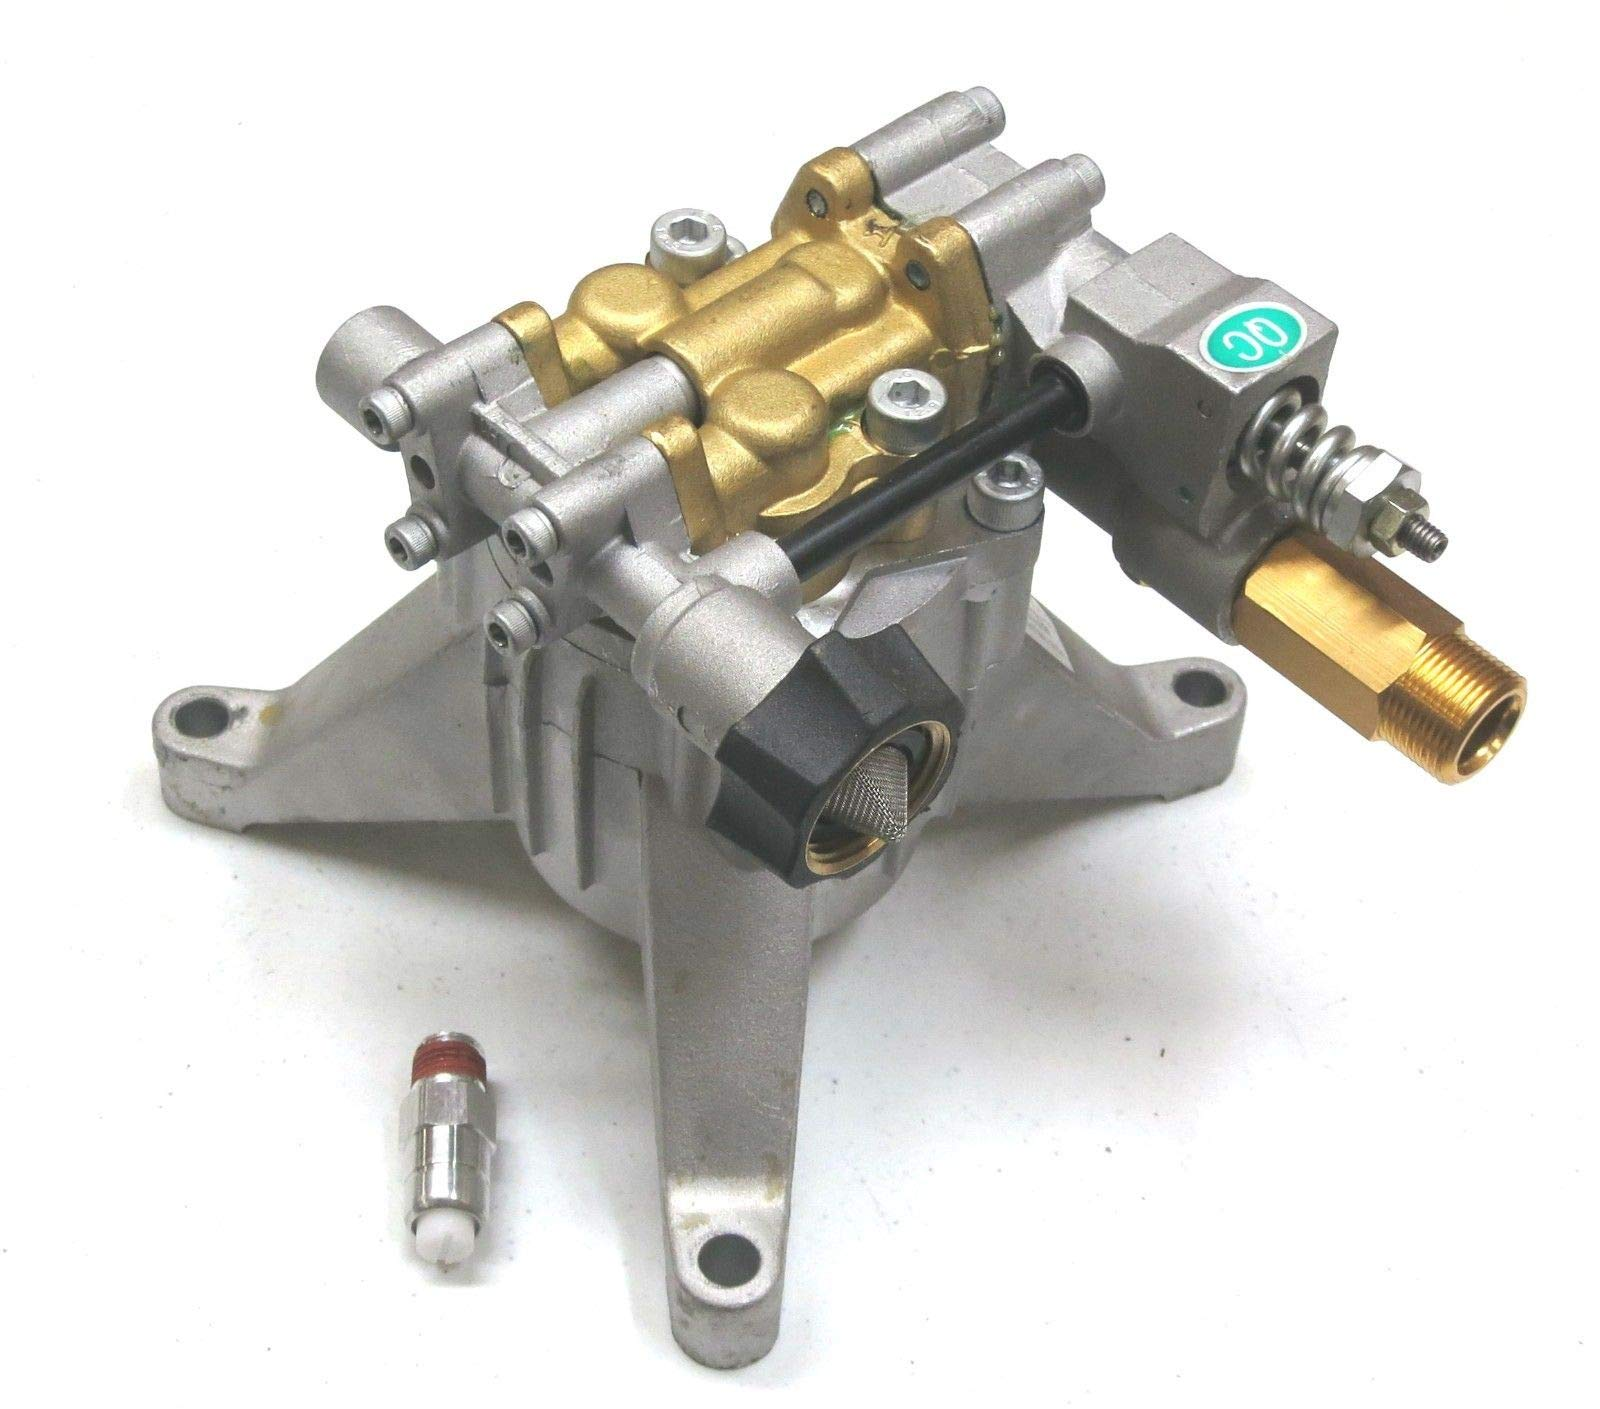 New 3100 PSI Upgraded POWER PRESSURE WASHER WATER PUMP Husky HU80432 HU80432A by The ROP Shop by Himore